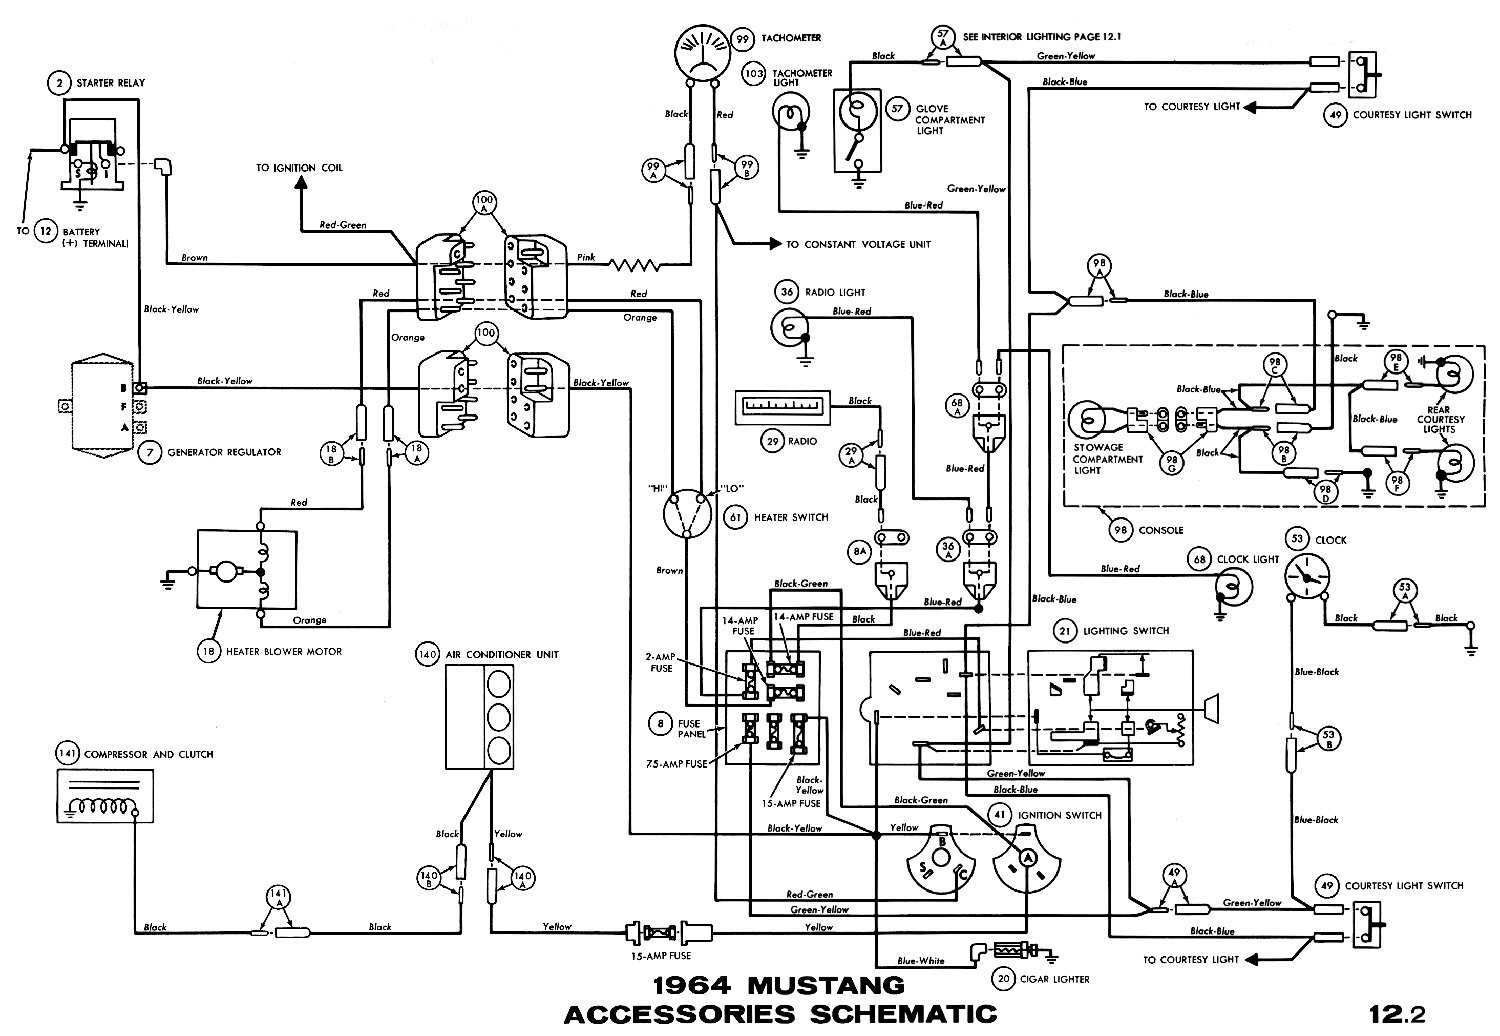 1965 Mustang Heater Switch Wiring Diagram Electrical Diagrams Fuse Box Blower Motor U2022 Rh Friendsoffido Co 1967 Ford